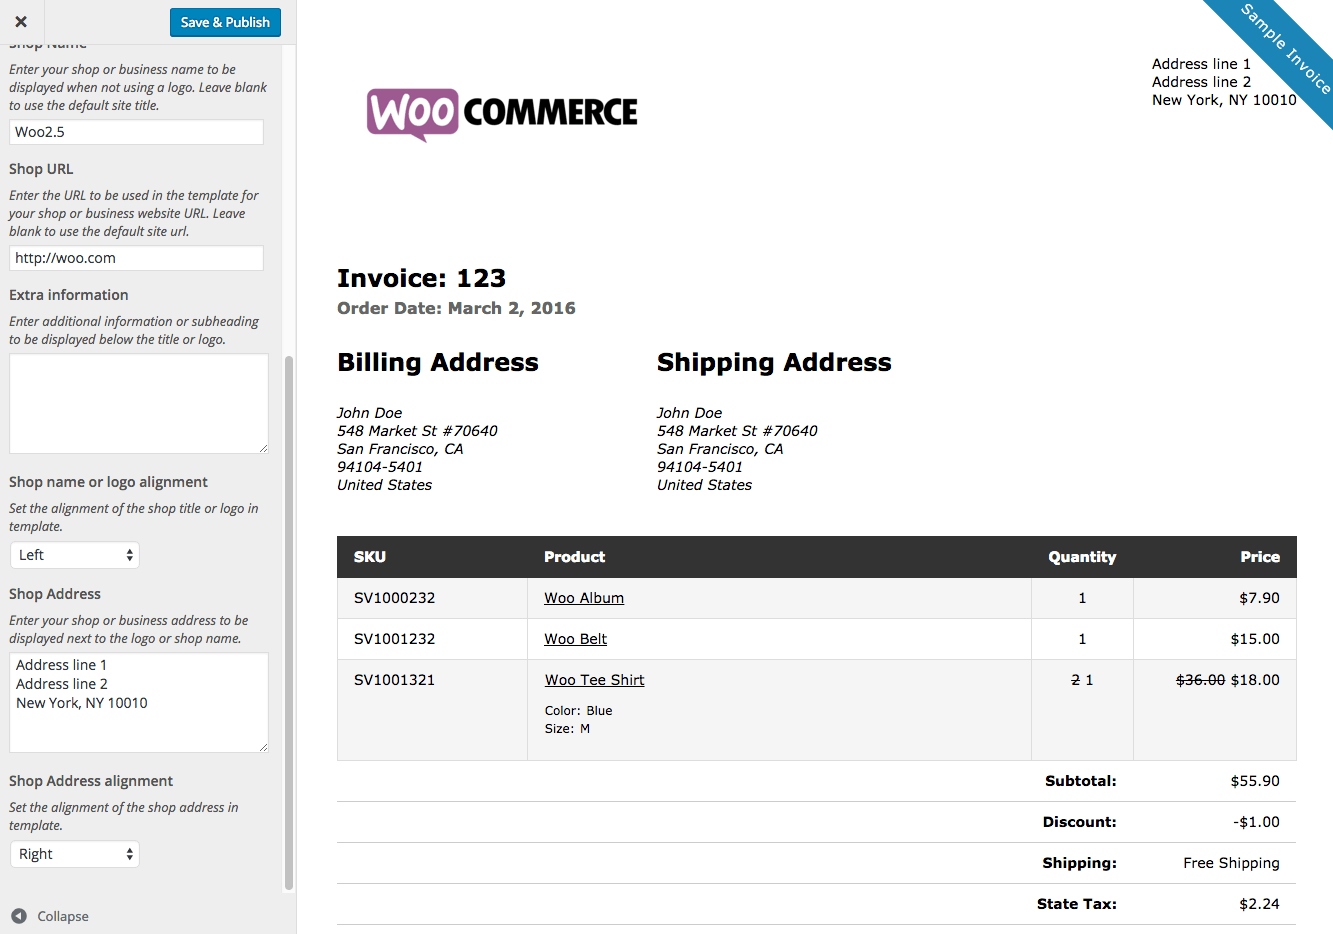 Usdgus  Picturesque Print Invoices Amp Packing Lists  Woocommerce With Lovable Woocommerce Print Invoices  Packing Lists Customizer With Delightful Free Invoice Templates For Mac Also Jeep Grand Cherokee Invoice Price In Addition Invoices App And What Is The Difference Between Msrp And Invoice As Well As Acura Mdx Invoice Price Additionally Business Invoicing Software From Woocommercecom With Usdgus  Lovable Print Invoices Amp Packing Lists  Woocommerce With Delightful Woocommerce Print Invoices  Packing Lists Customizer And Picturesque Free Invoice Templates For Mac Also Jeep Grand Cherokee Invoice Price In Addition Invoices App From Woocommercecom